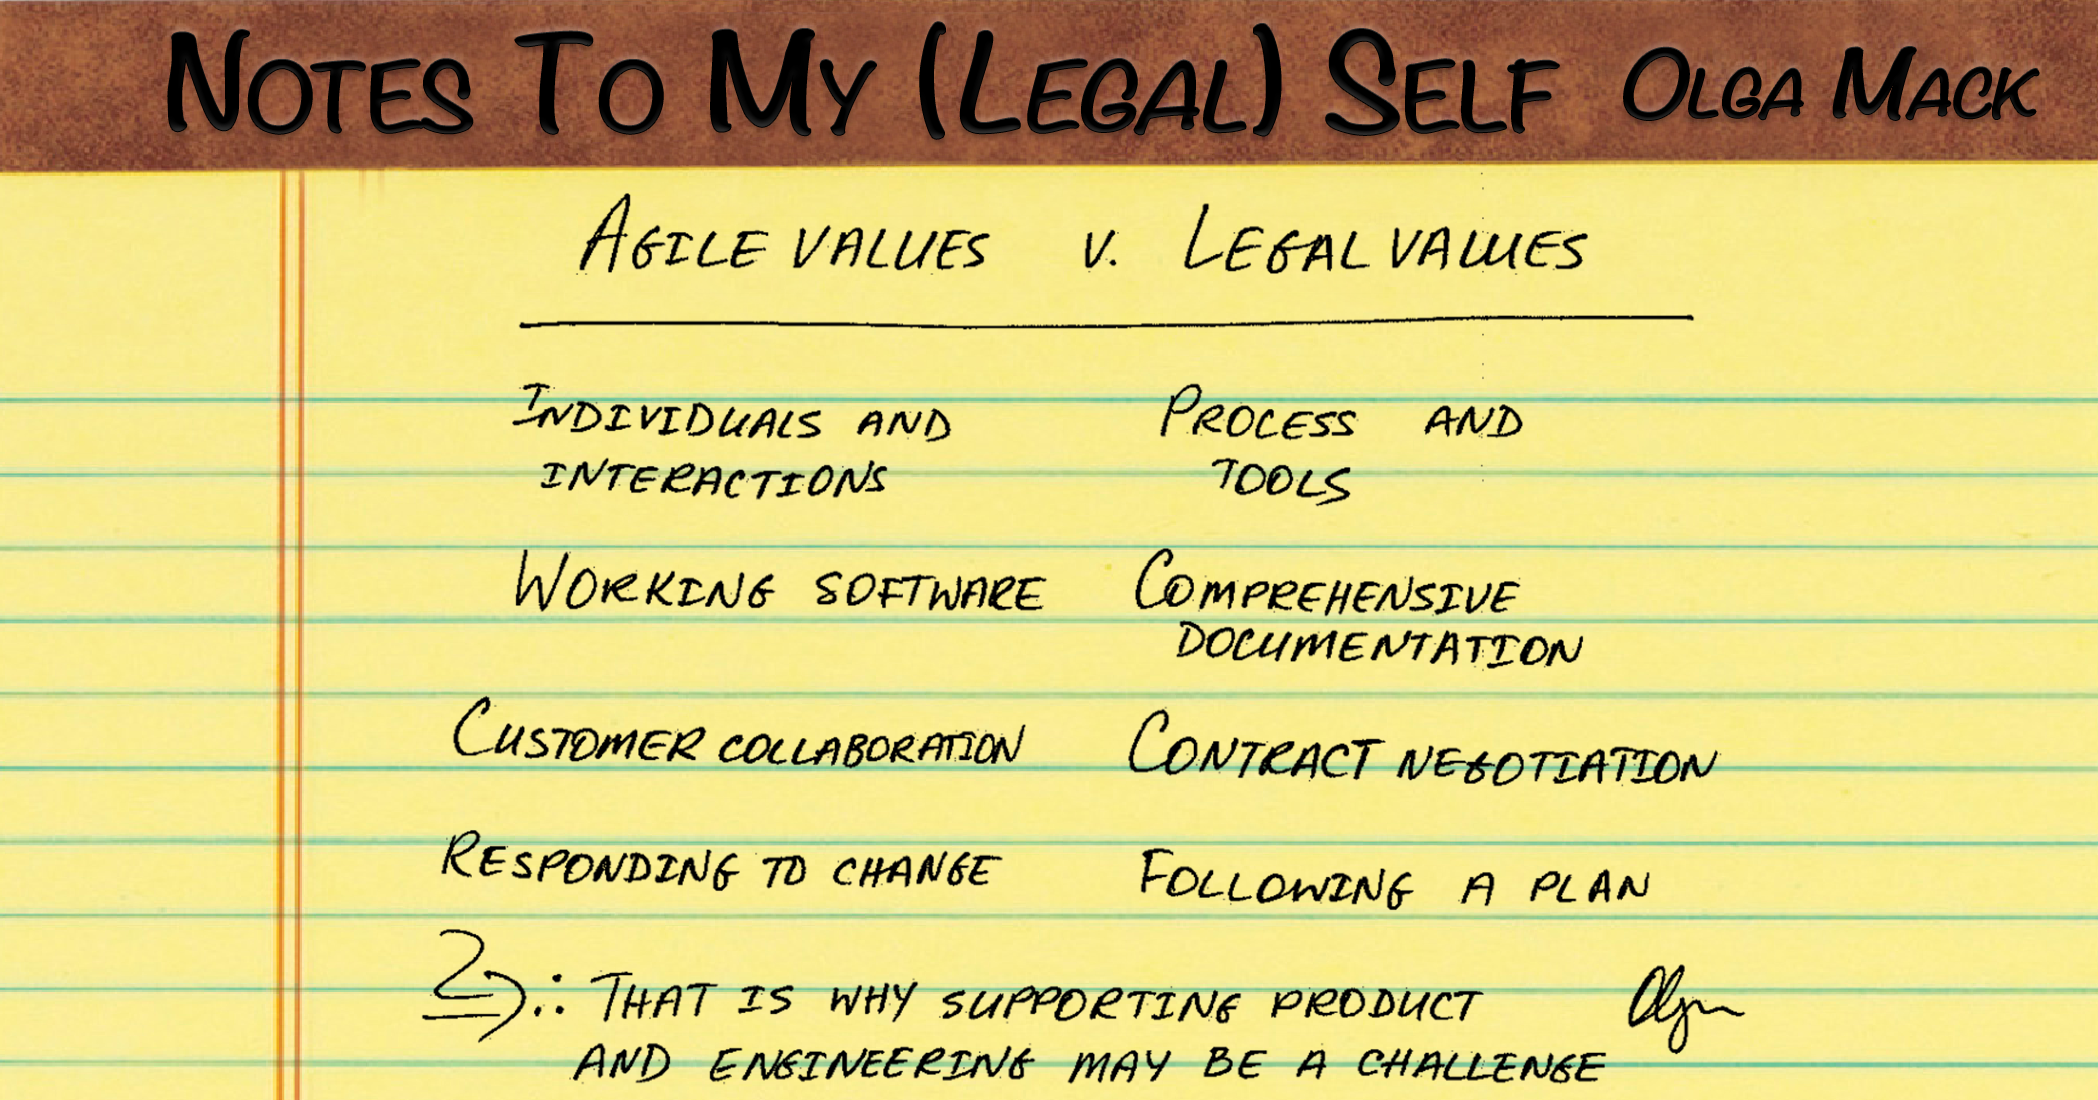 LegalSelf 43 - In-House Work Is A Delicate Balancing Act